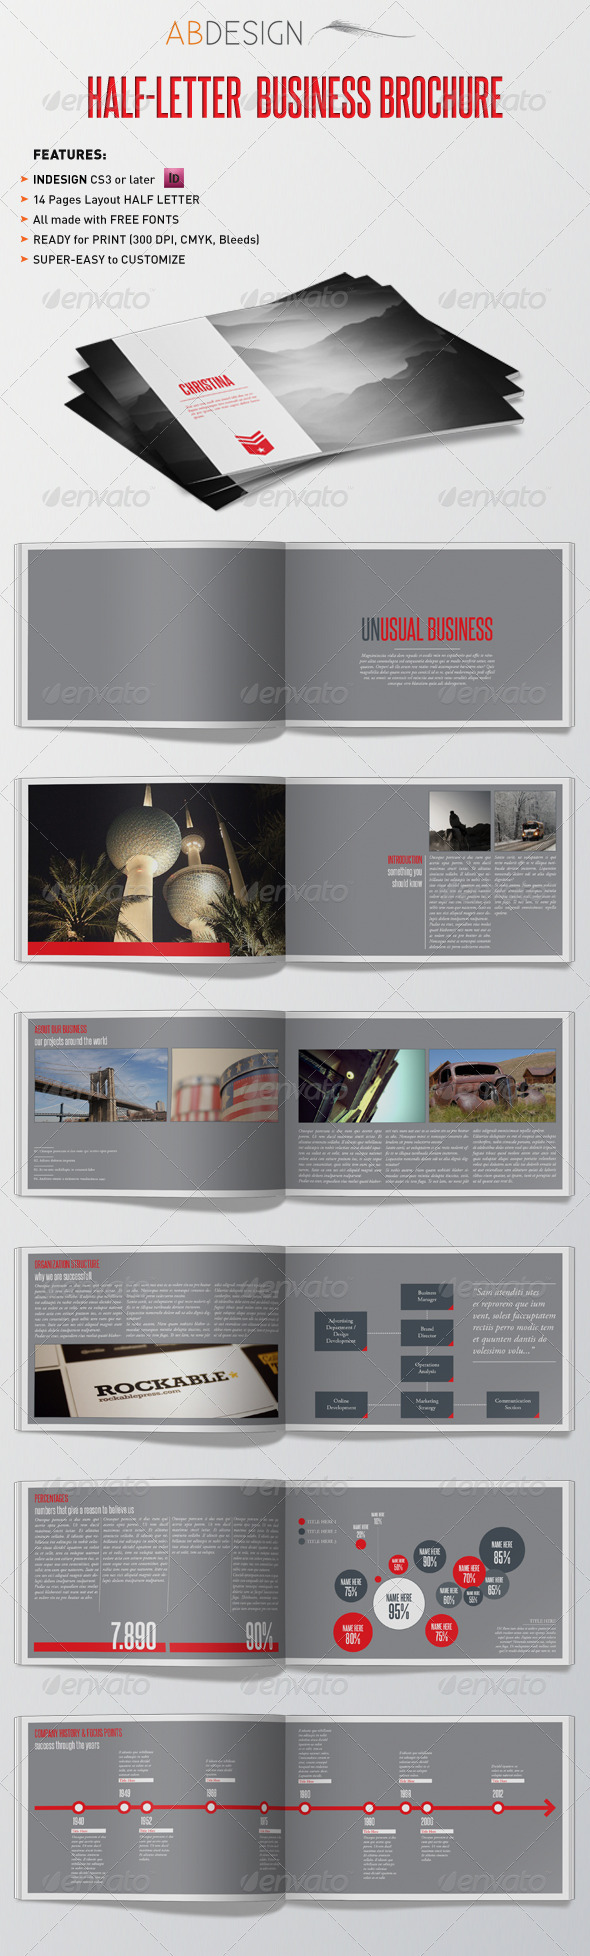 Half-Letter Business Brochure Template - Brochures Print Templates